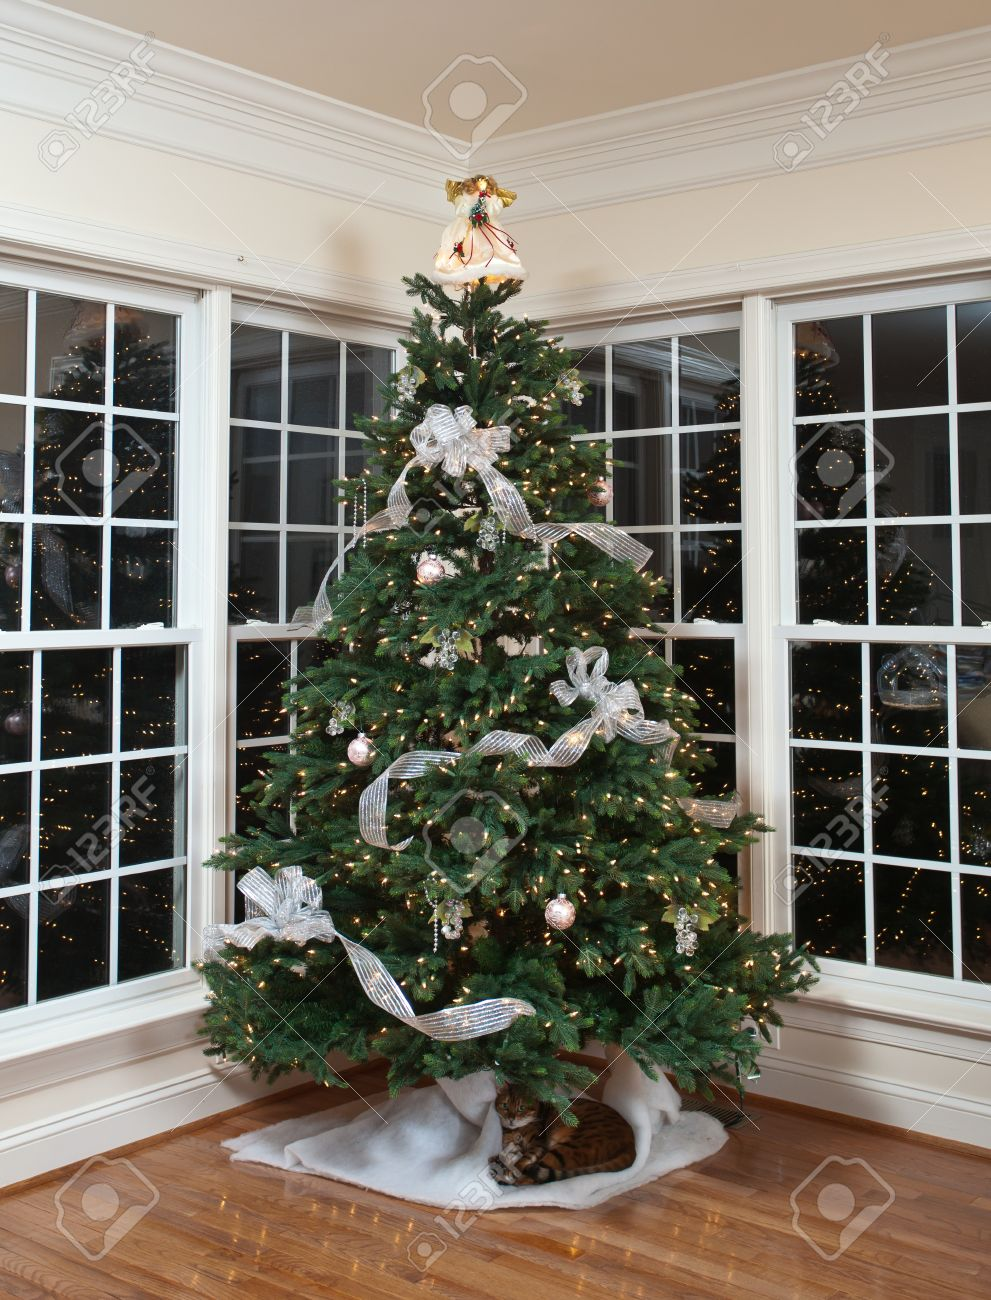 Christmas Tree Decorated With Silver And White Ribbons And Ornaments Stock Photo Picture And Royalty Free Image Image 11526593